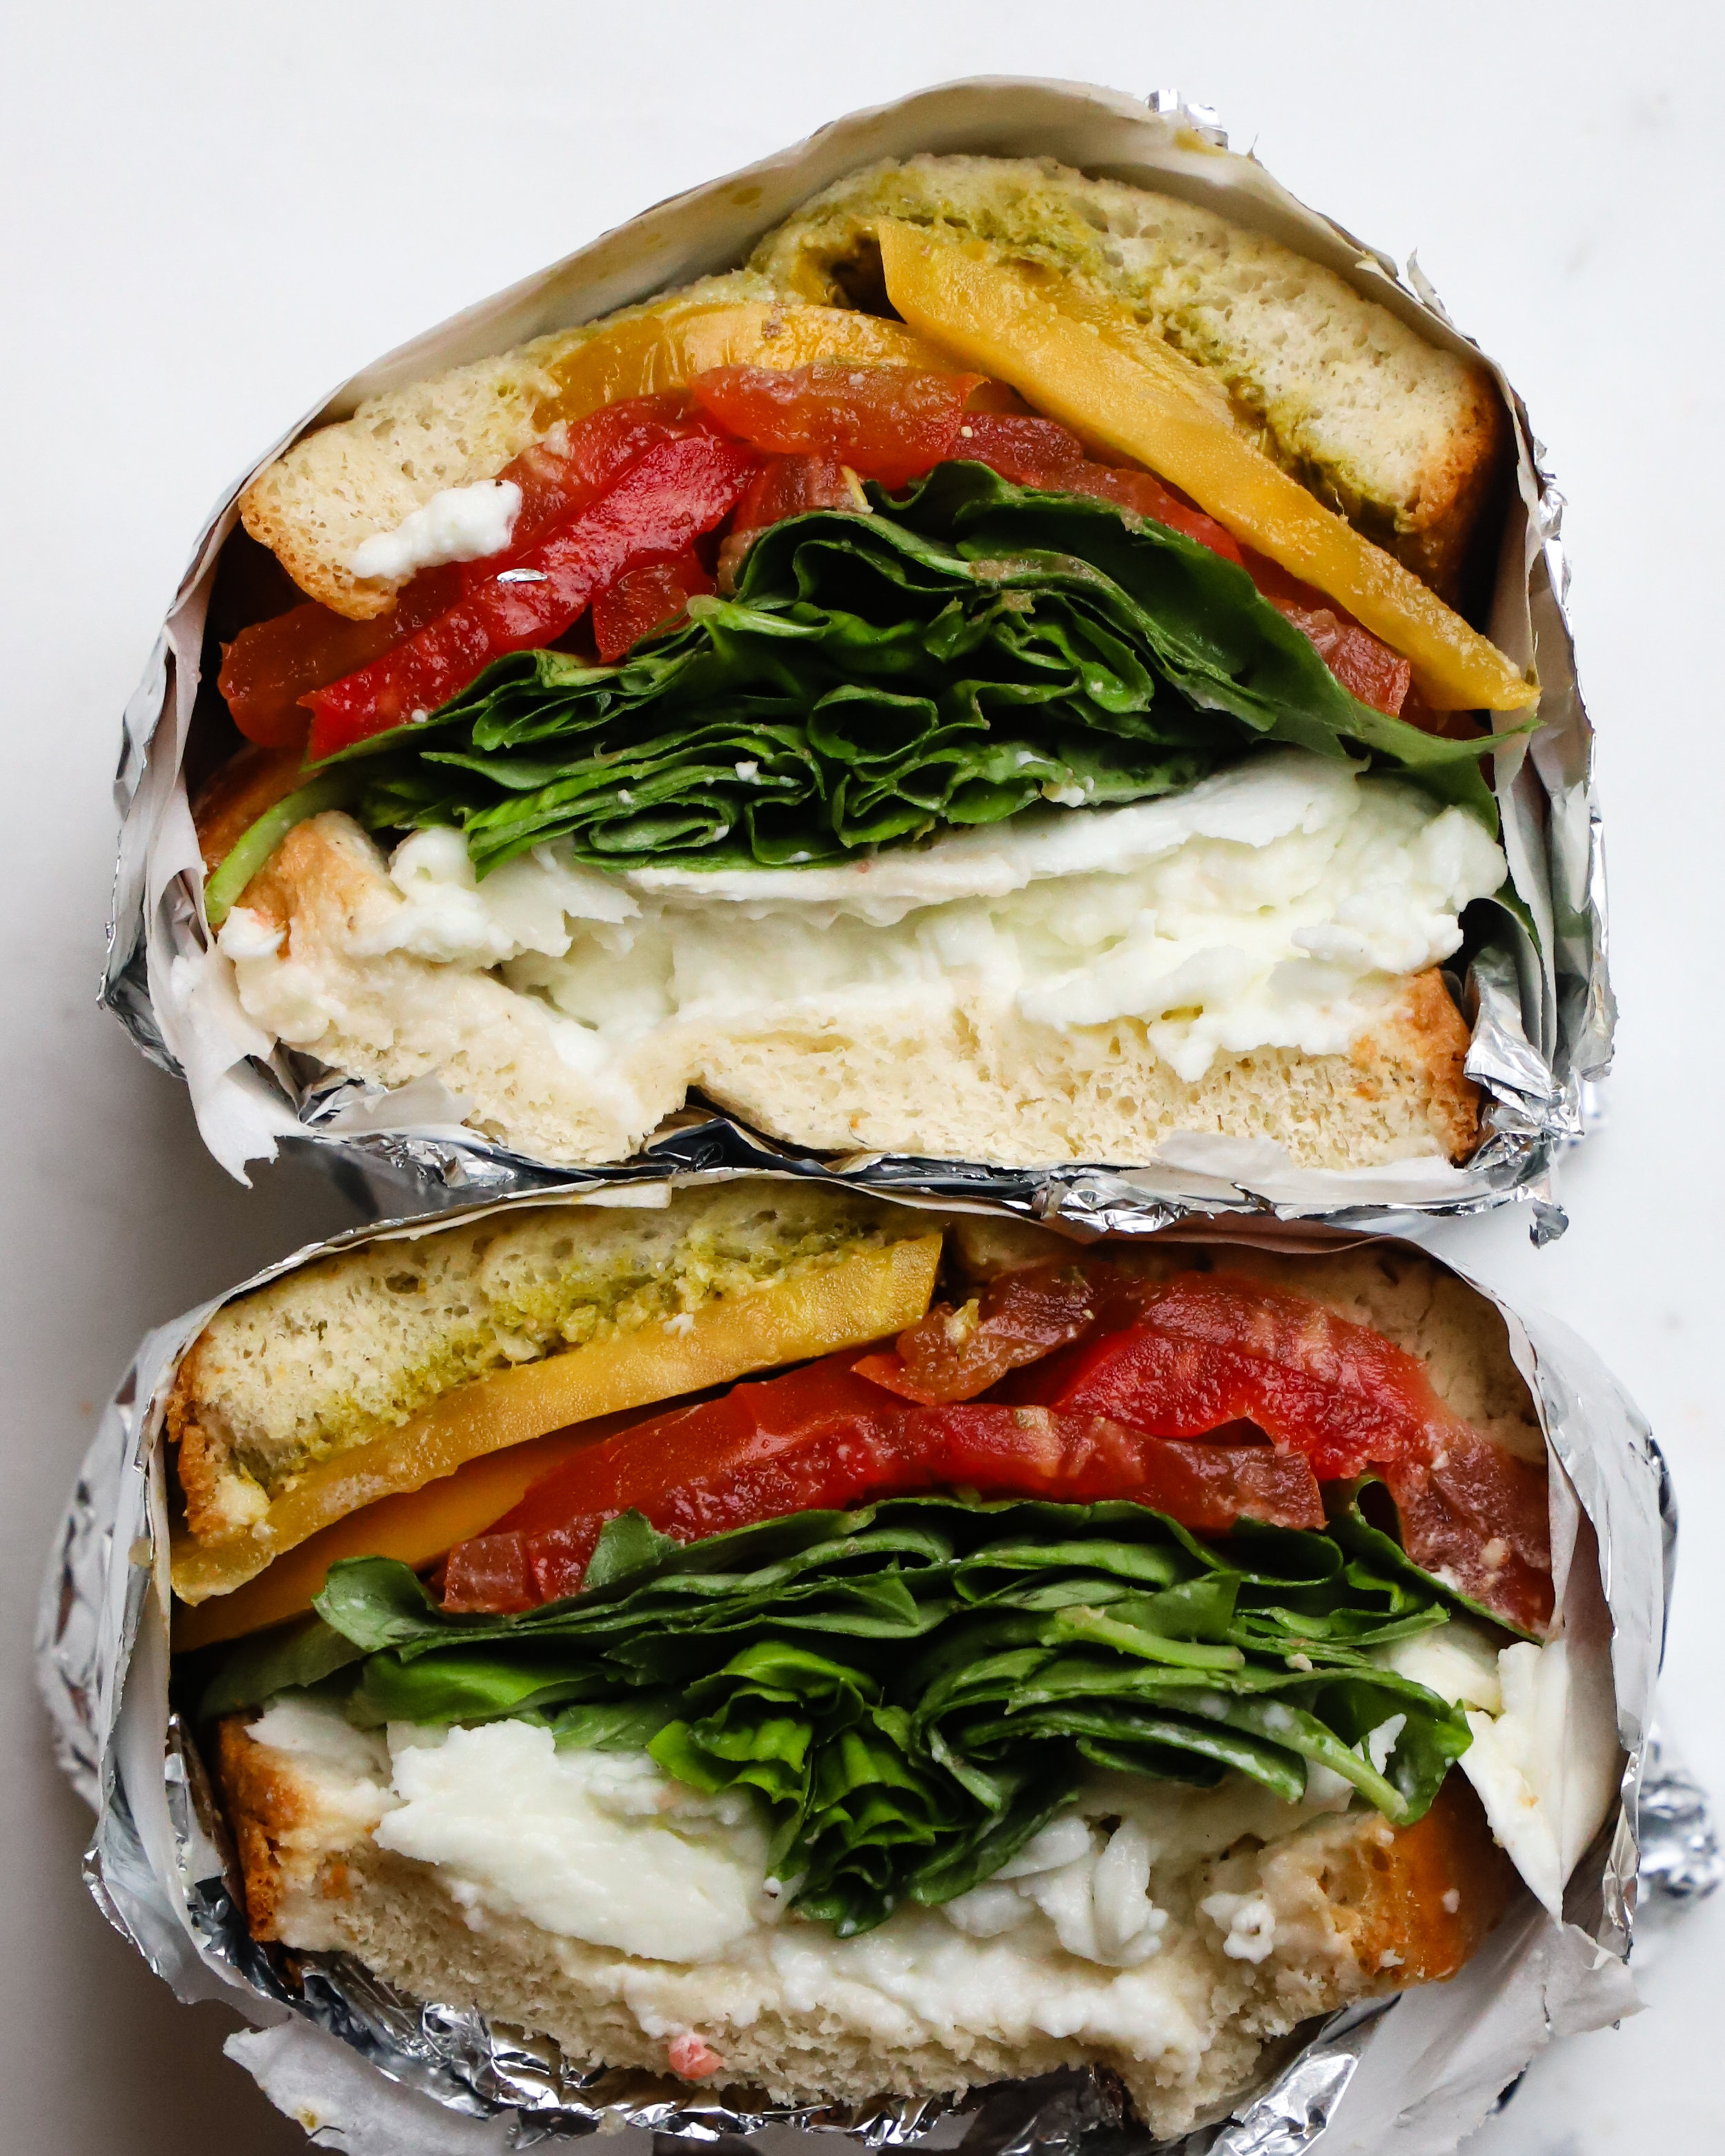 Heirloom Tomato Caprese Sandwich